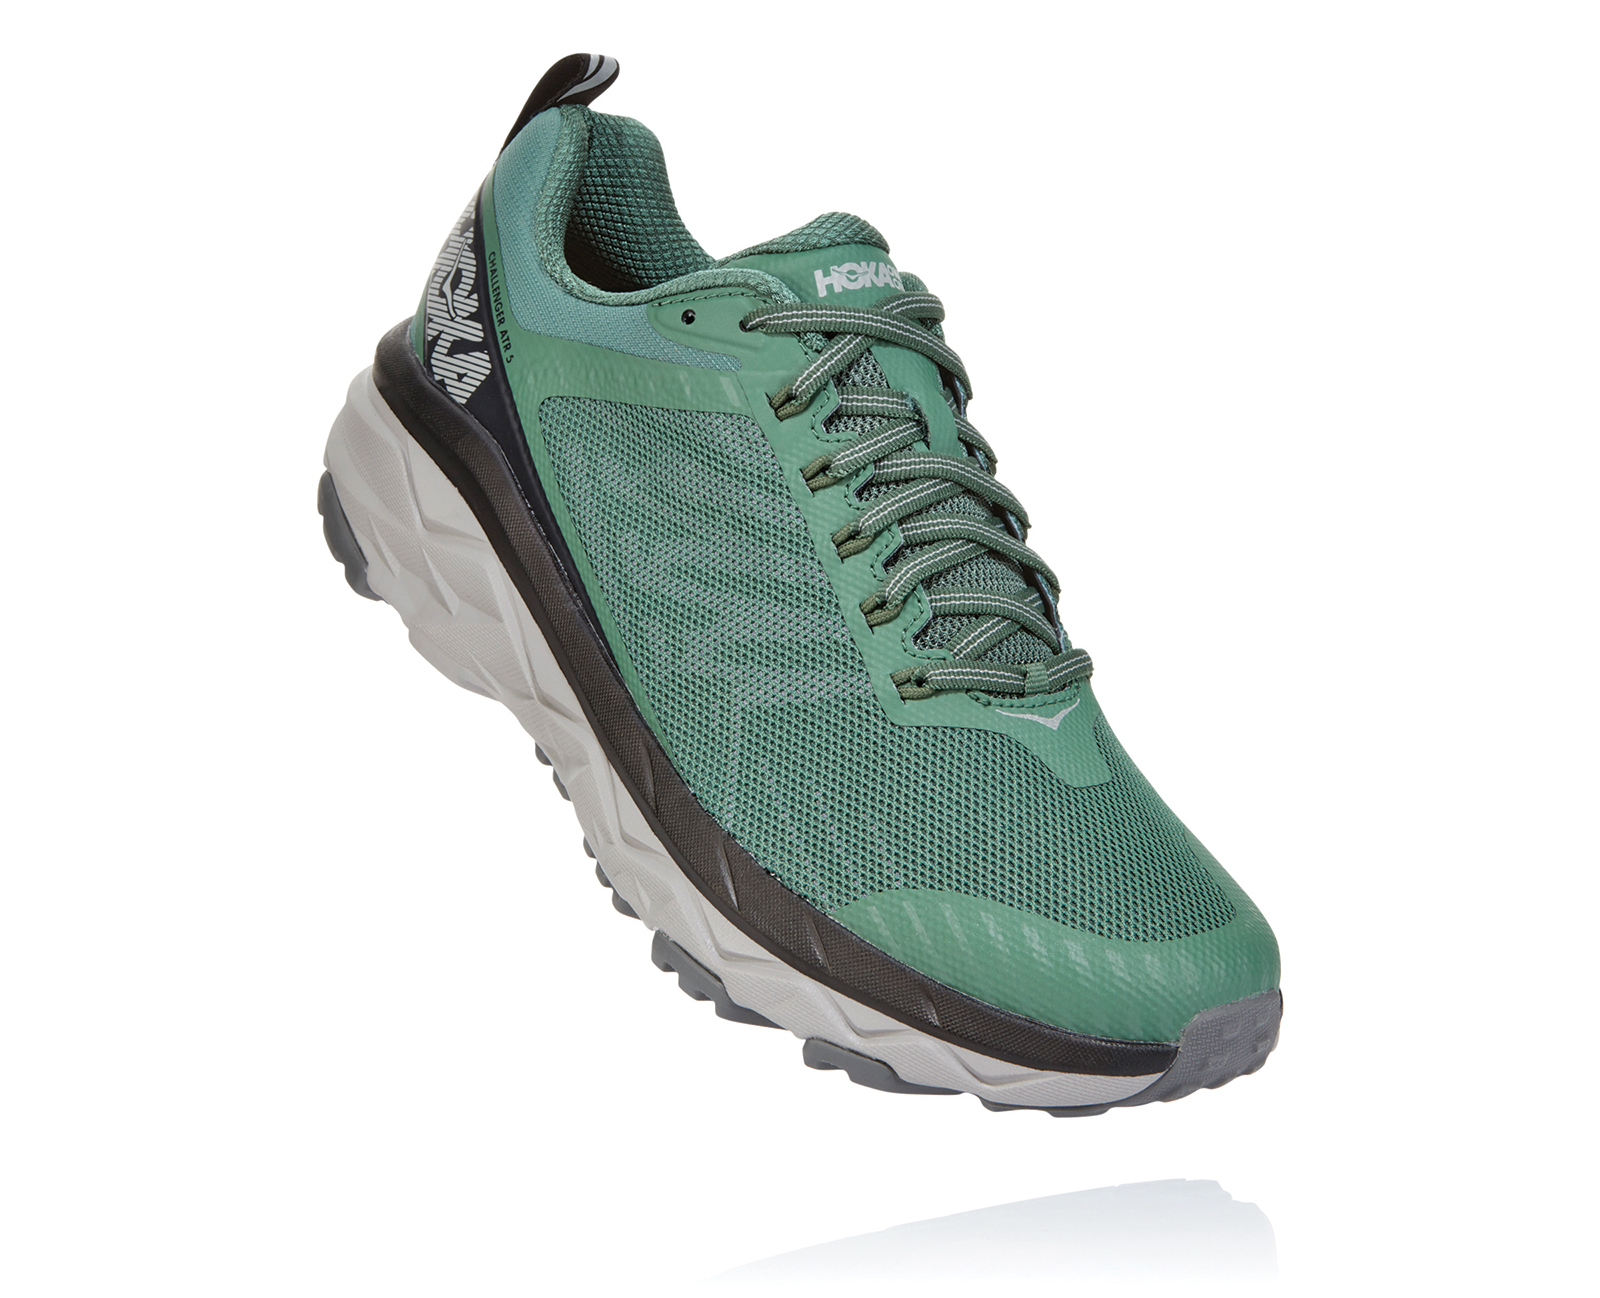 HOKA ONE ONE CHALLENGER ATR 5 WIDE VERTE Chaussures de Trail pieds larges